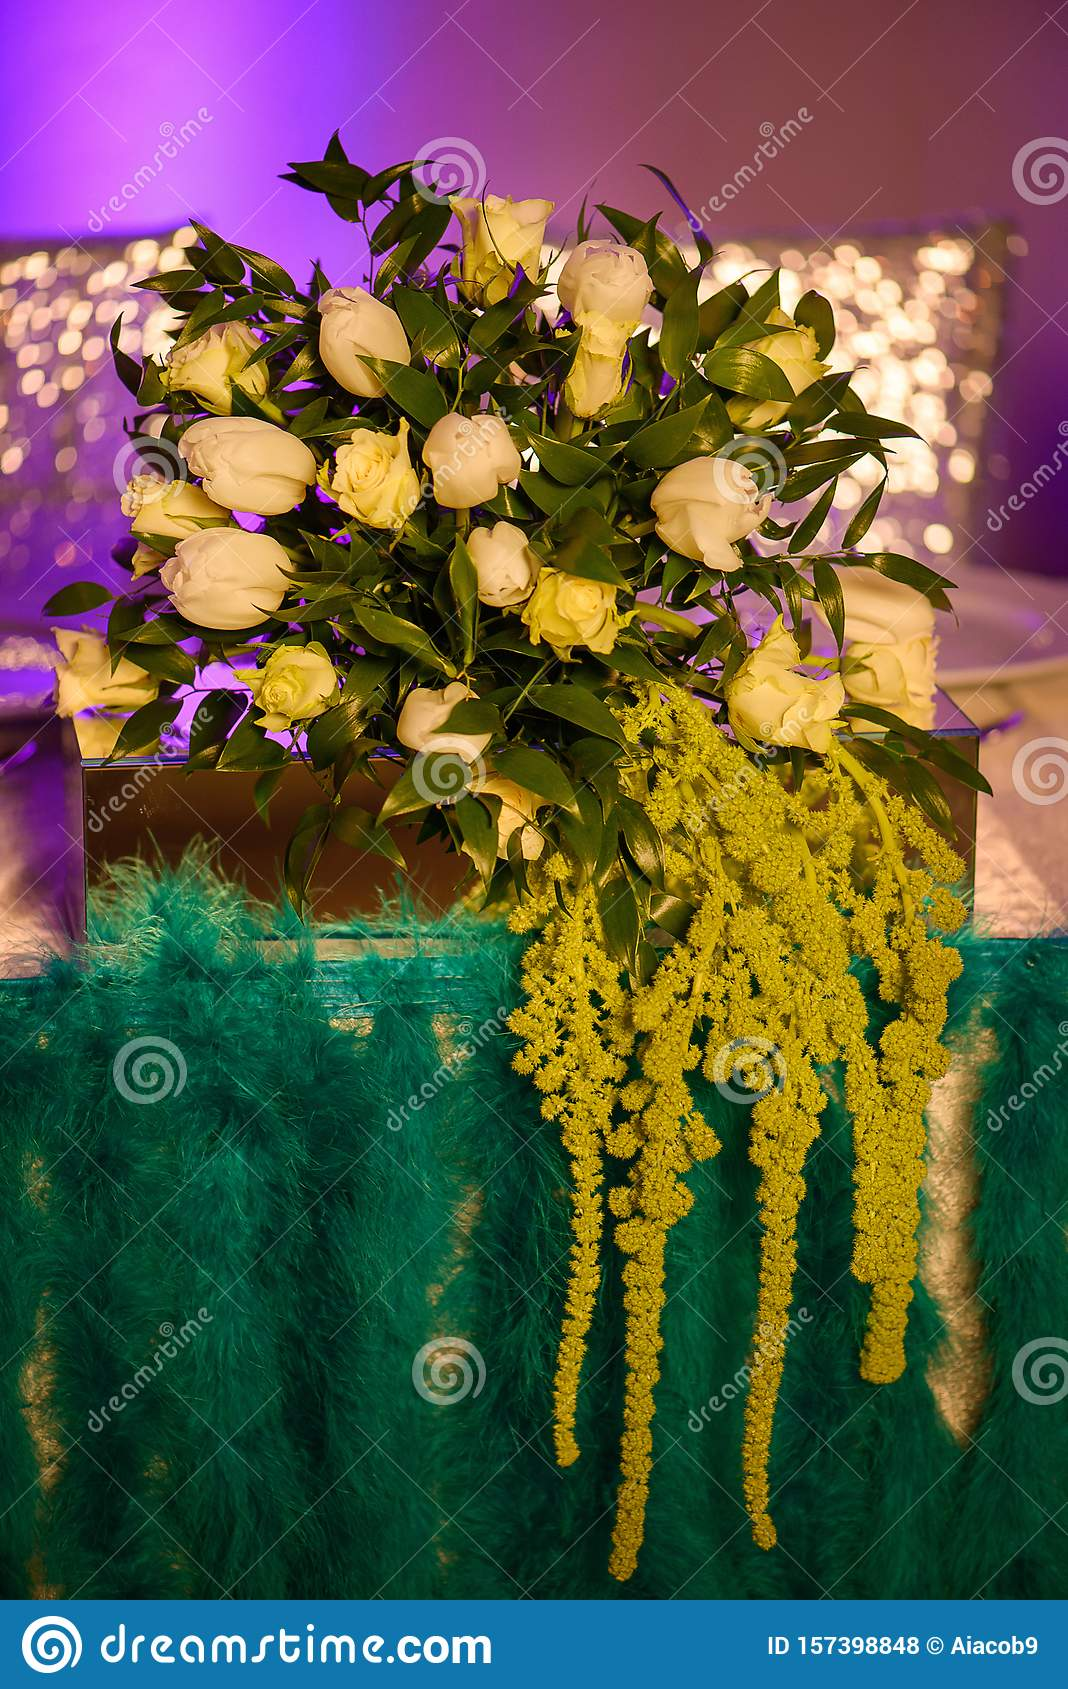 Vintage Style Floral Arrangement With Fresh White Tulips And Roses Mixed  With Waxy Green Leaves Stock Photo - Image of glass, flower: 157398848